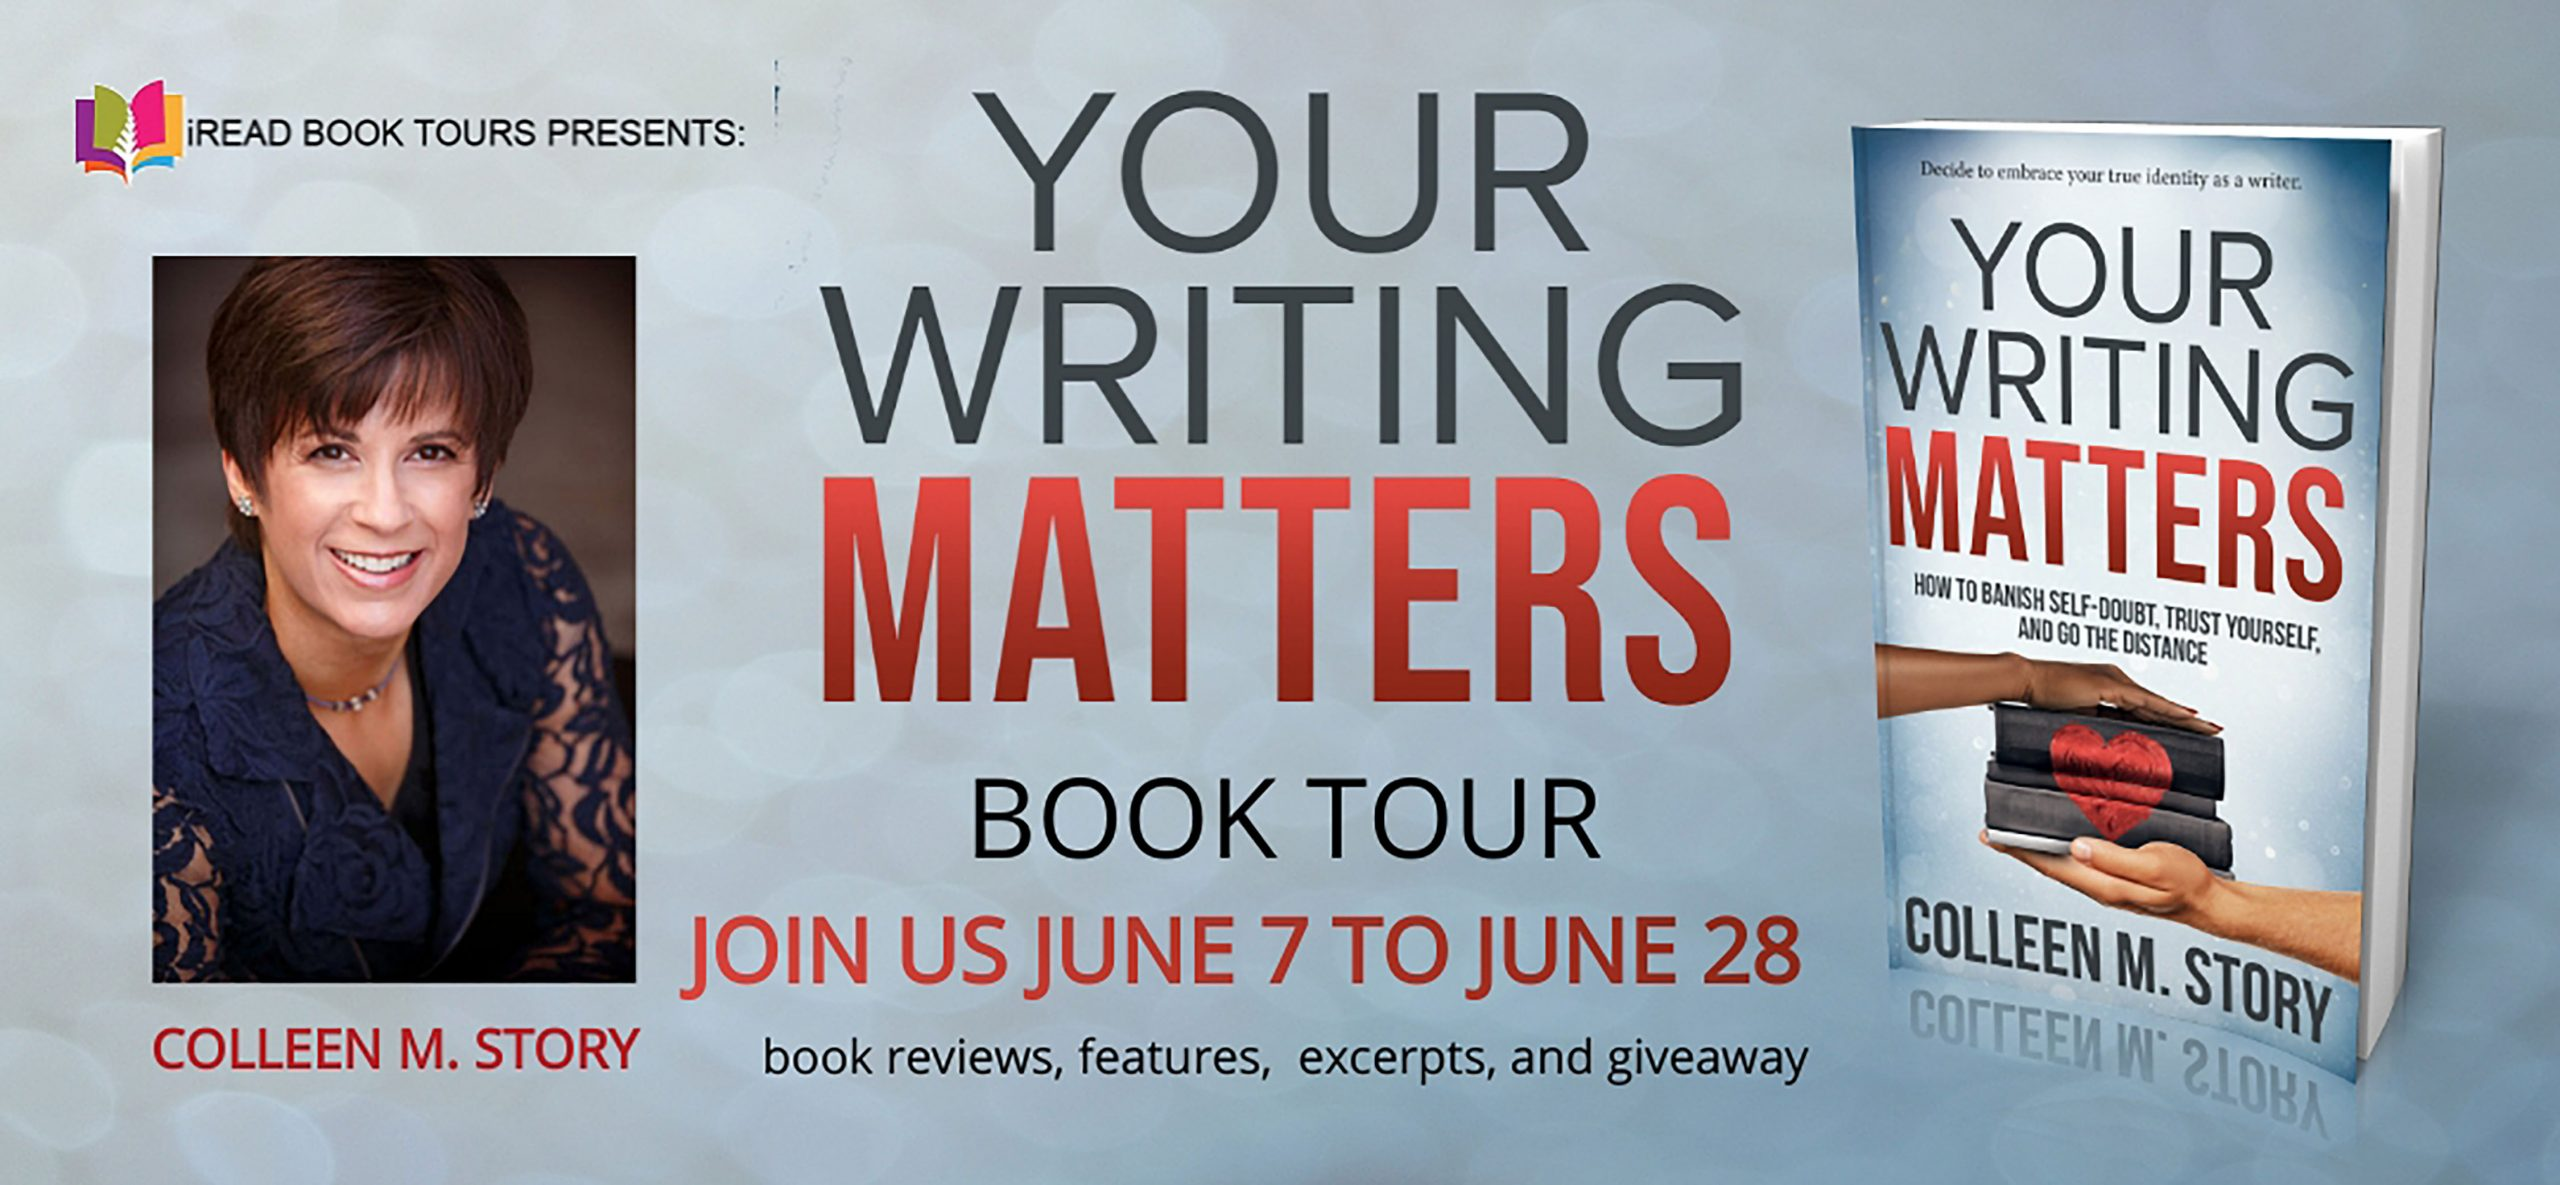 Your Writing Matters – 5 Star Book Review